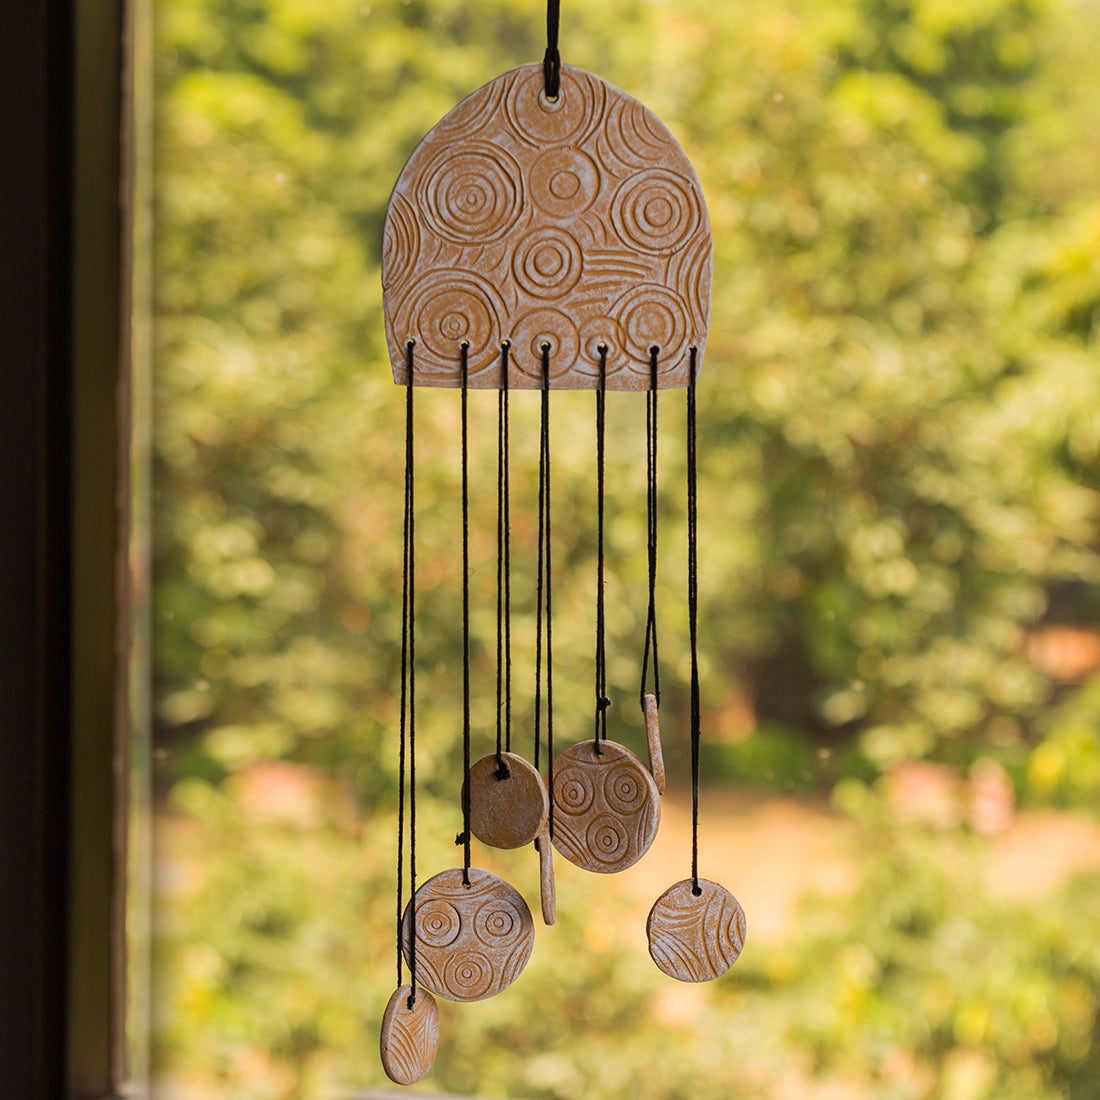 """Zephyr's Tune"" Handmade & Hand-Painted Garden Decorative Hanging & Wind Chime In Terracotta"